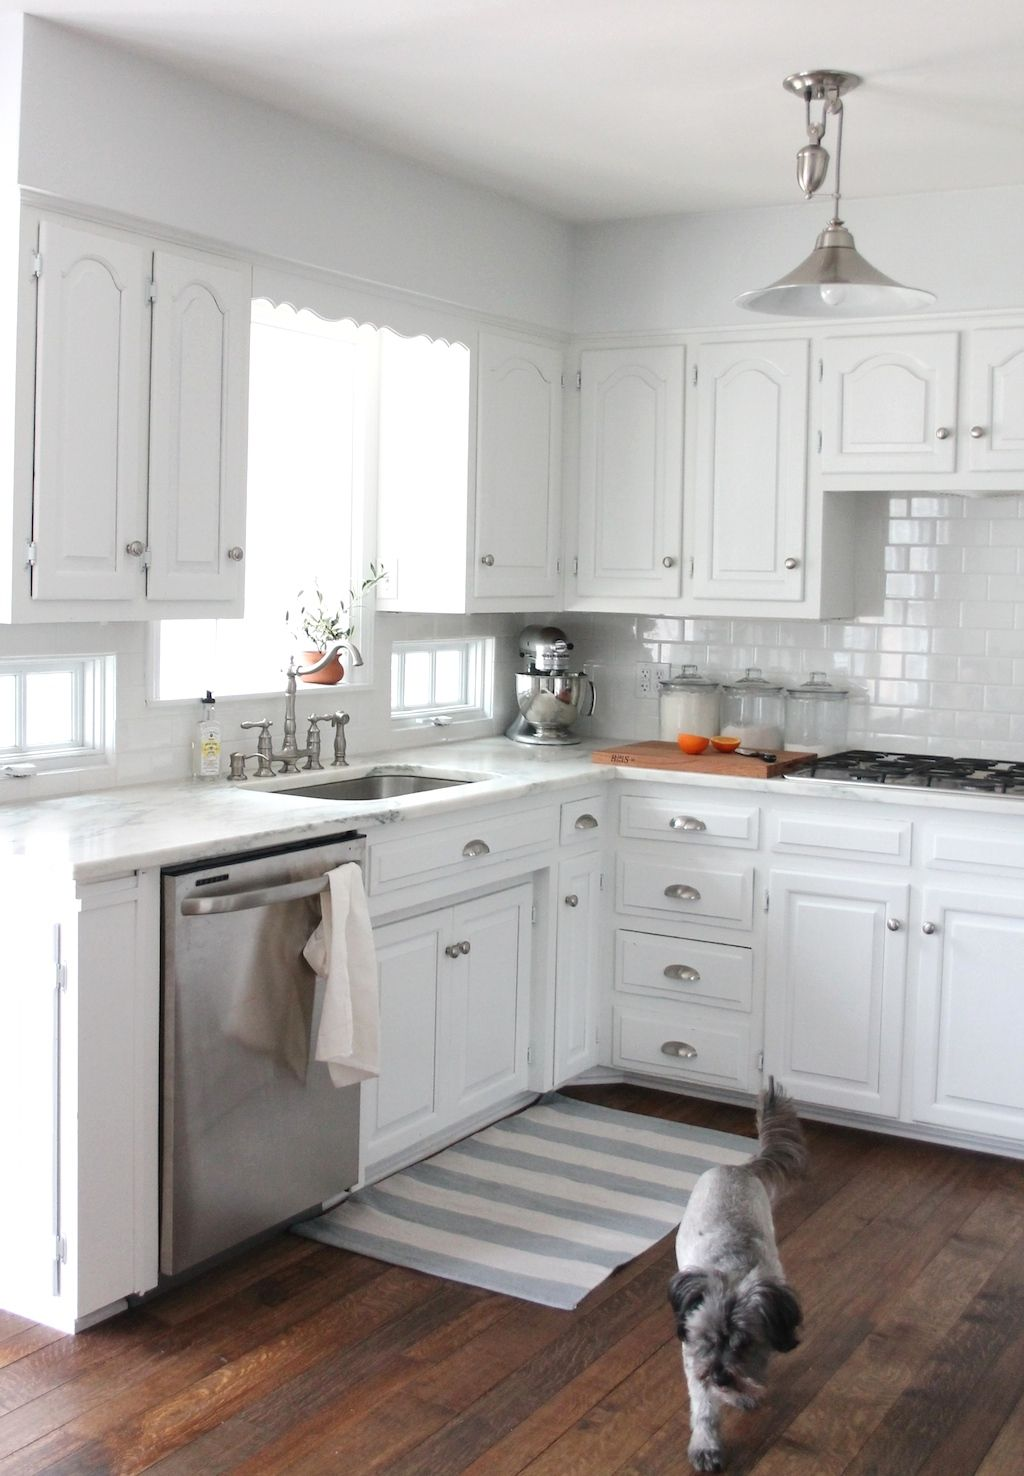 We did it our kitchen remodel easy diy projects and for White on white kitchen ideas